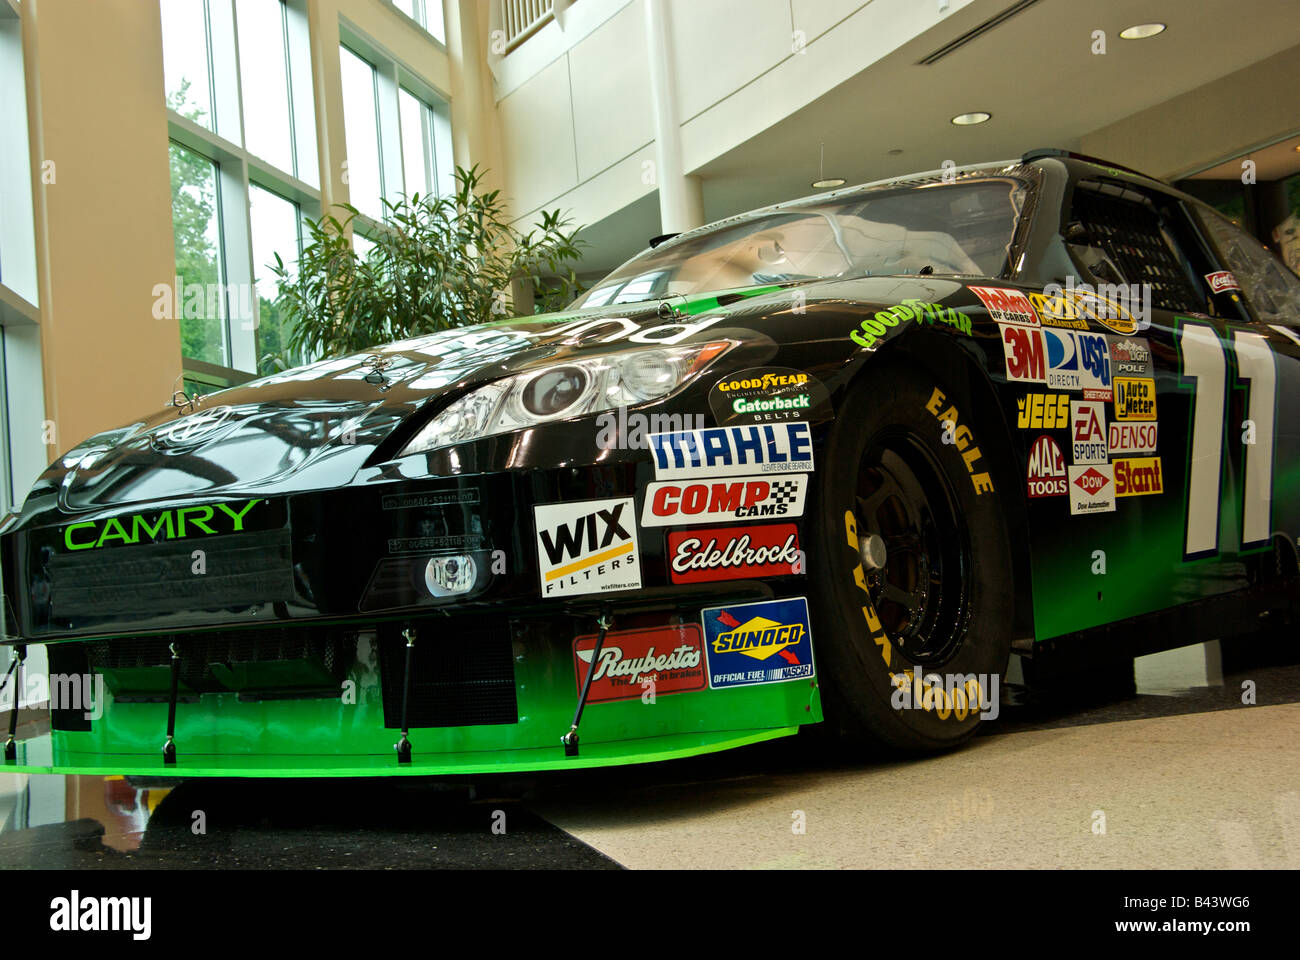 Denny hamlins toyota camry nascar car of tomorrow race car with sponsor decals on display at joe gibbs racing